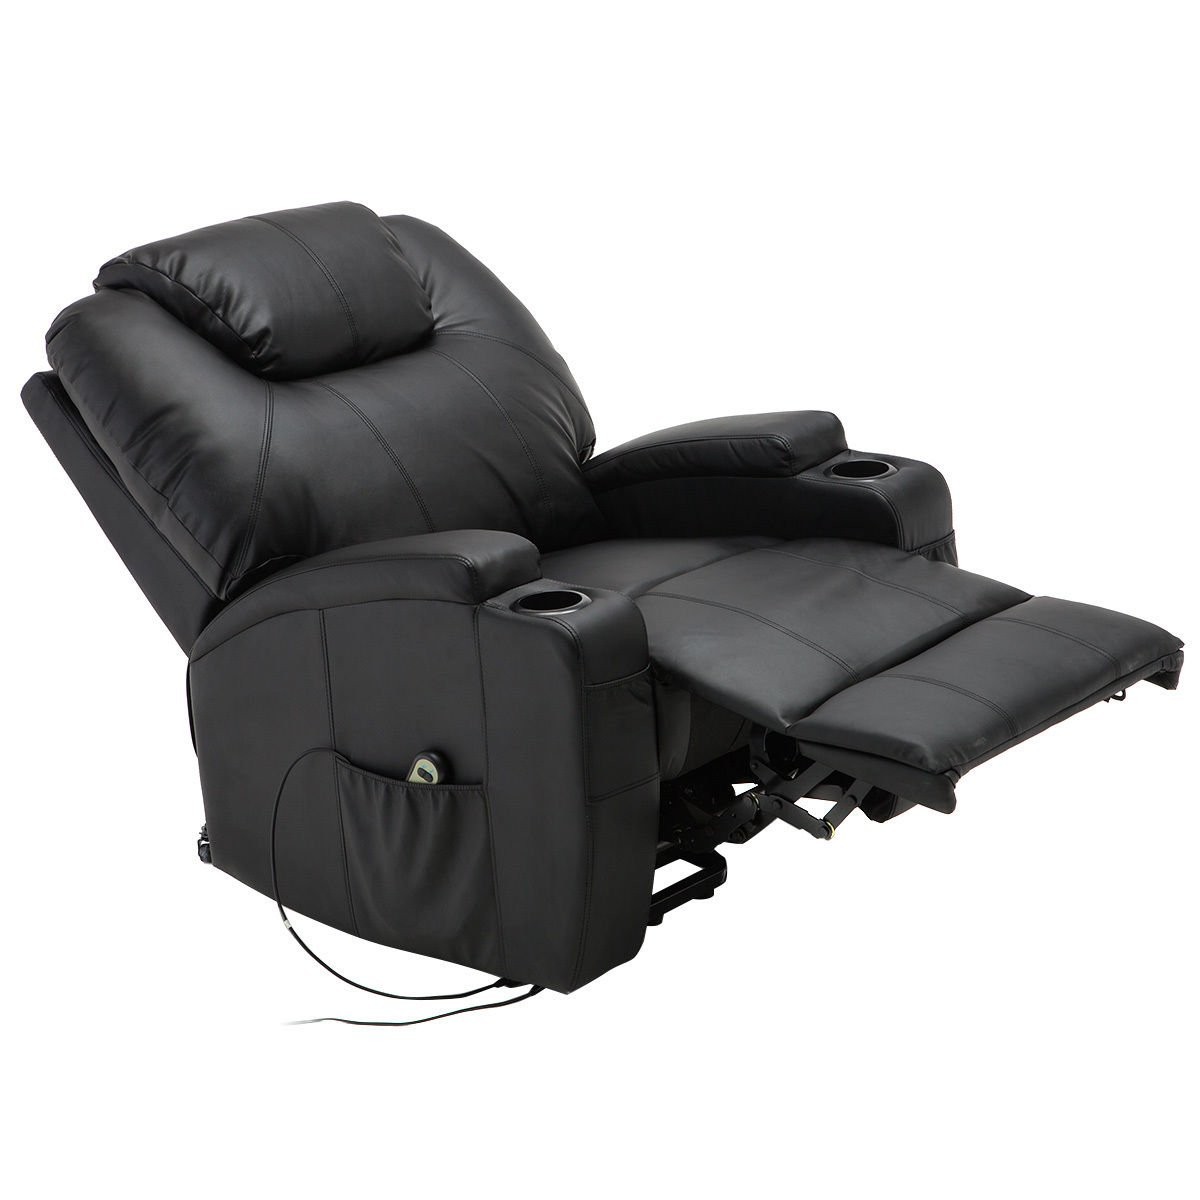 Colibrox Electric Lift Power Recliner Chair Heated Massage